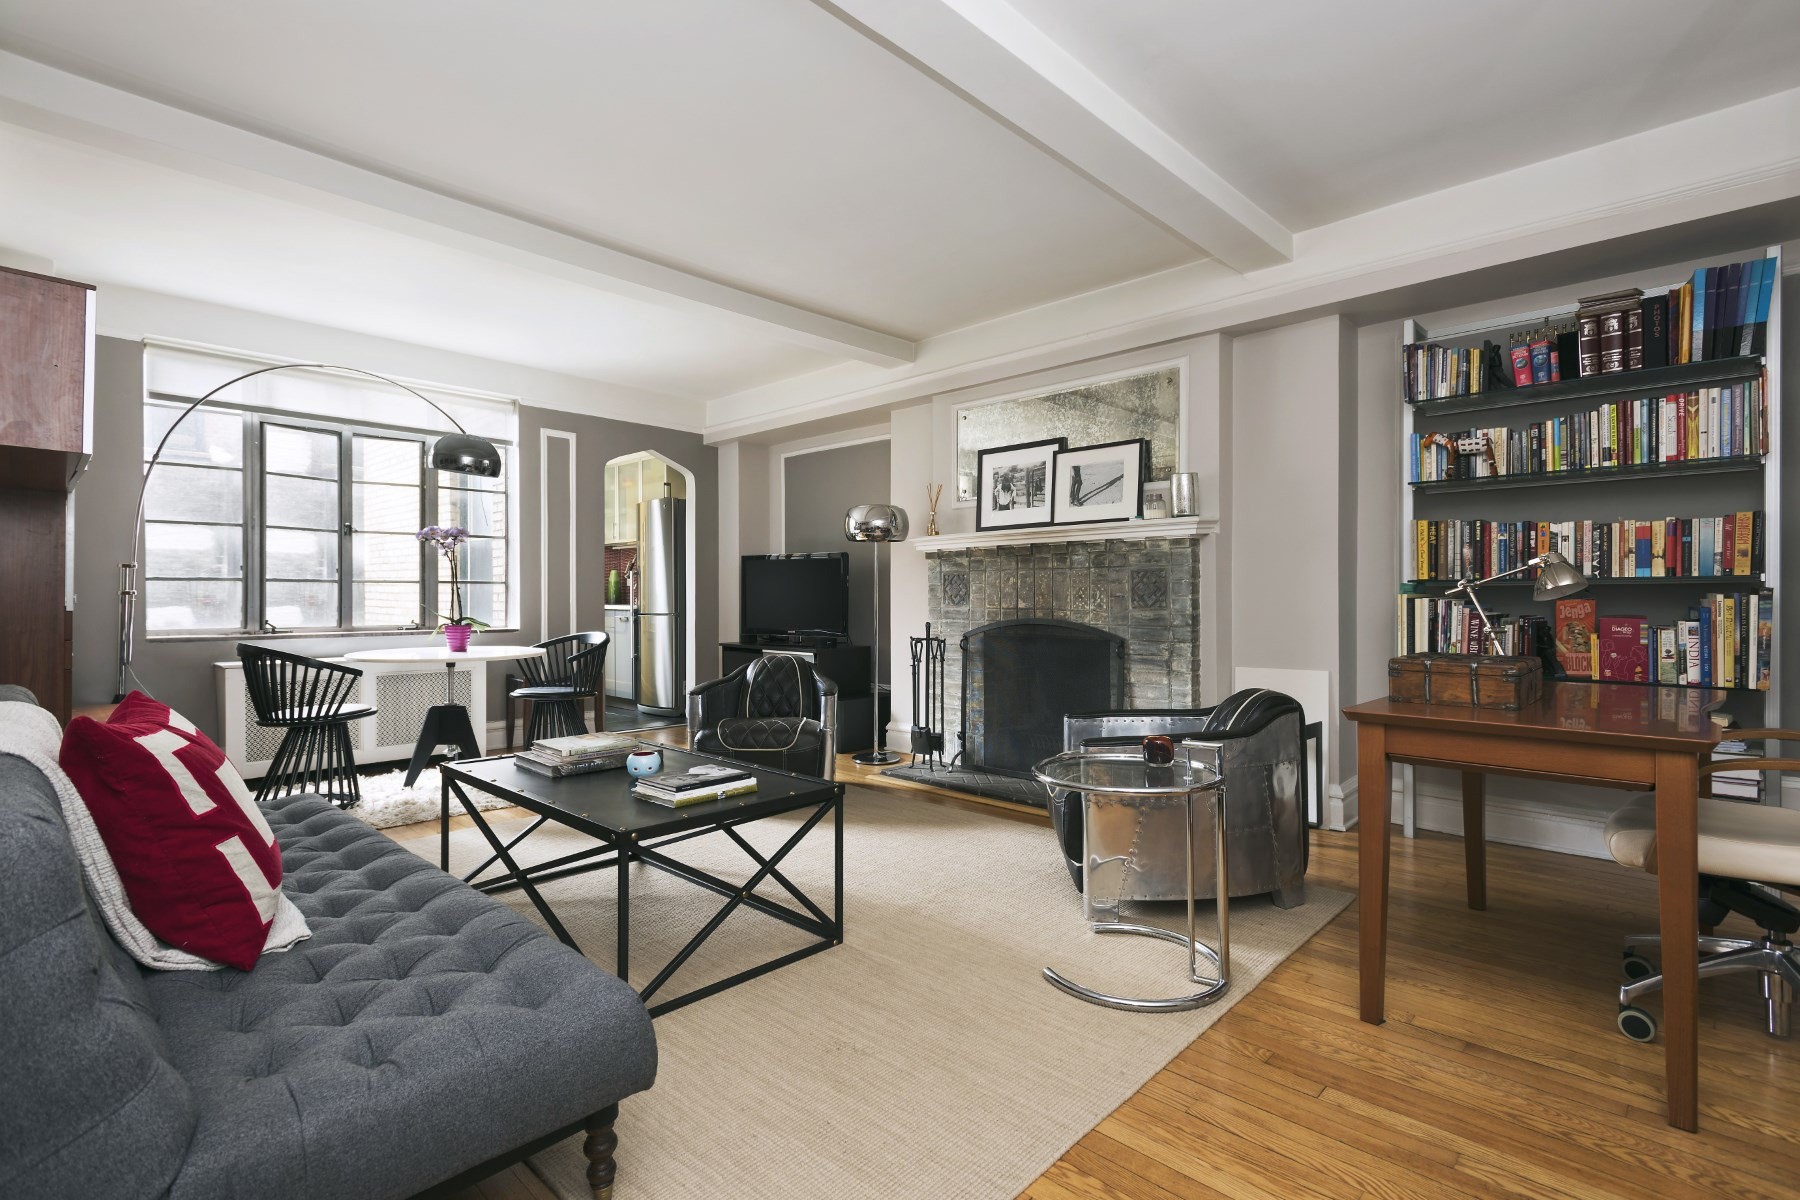 Co-op for Sale at 61 West 9th Street, 5D 61 West 9th Street Apt 5d Greenwich Village, New York, New York 10011 United States